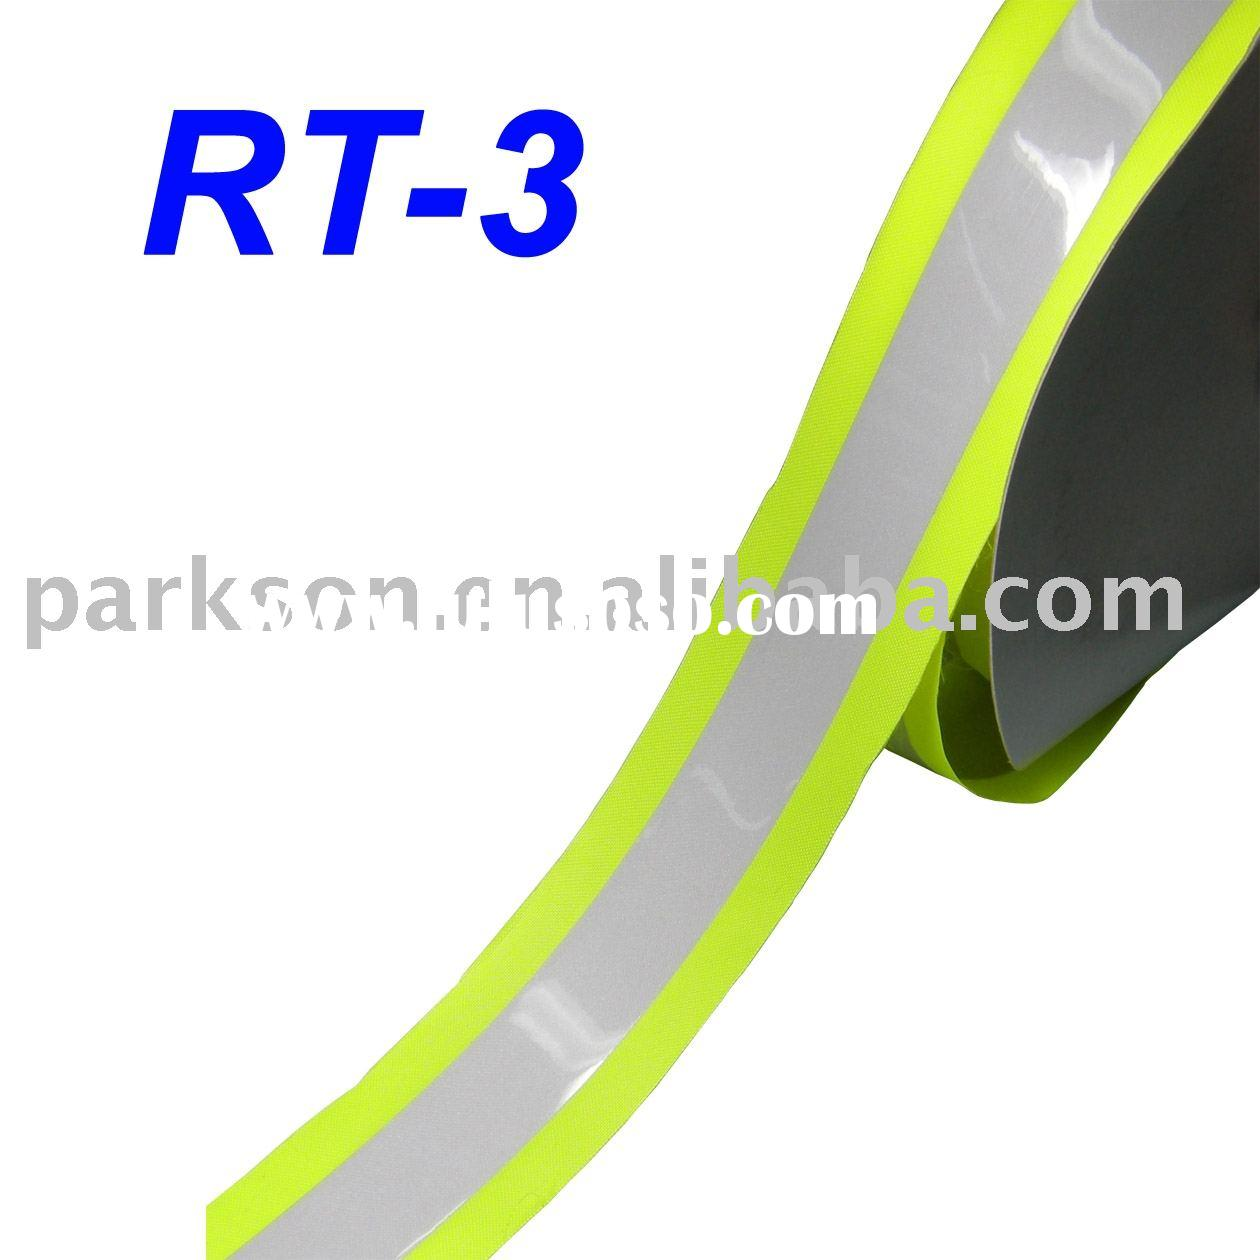 Reflective Tape, Reflective Material, Reflective Fabric